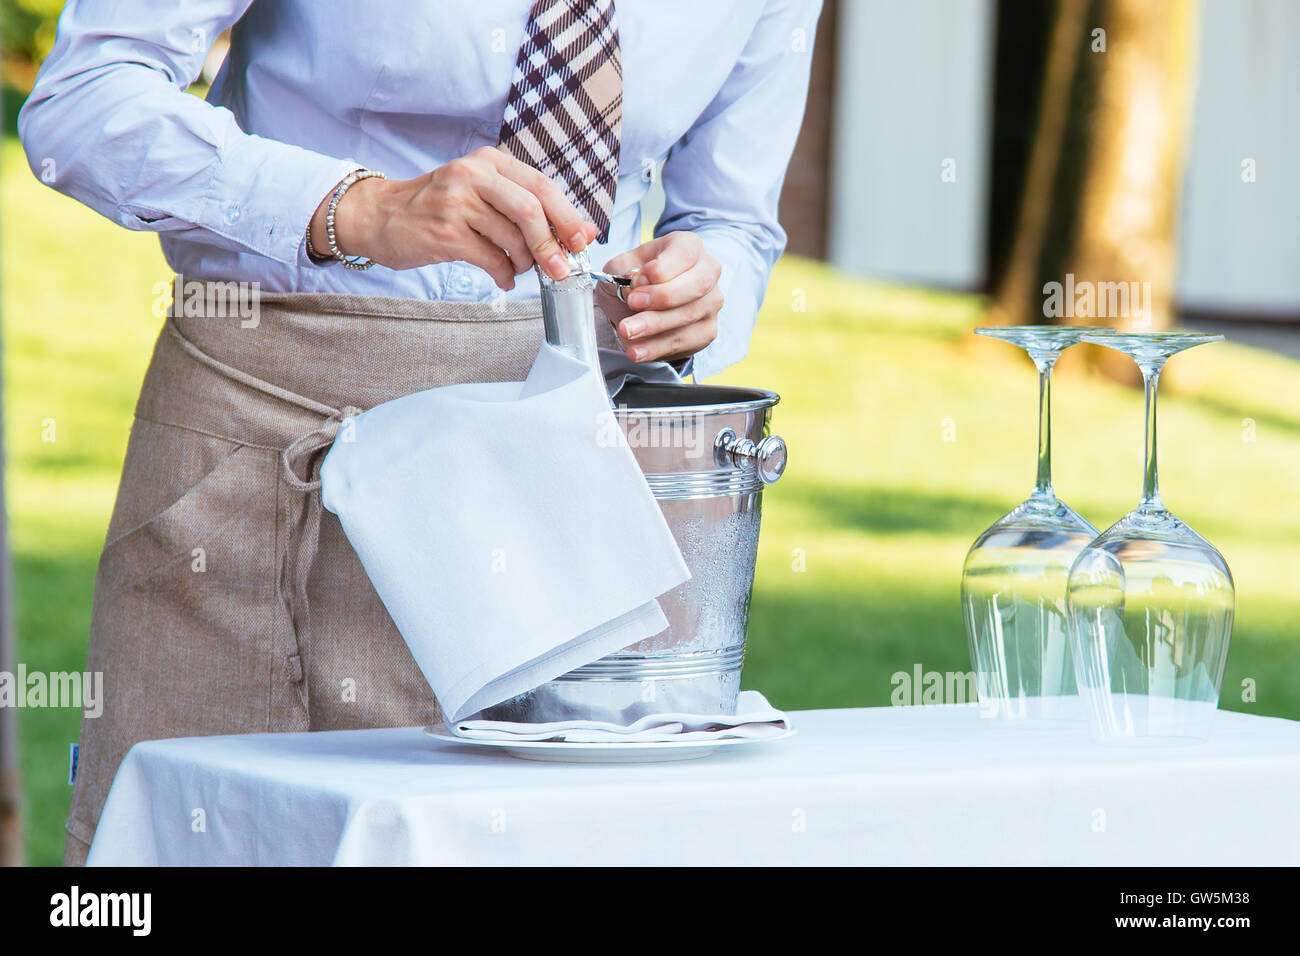 Waiter opening a champagne bottle for a toast - Stock Image